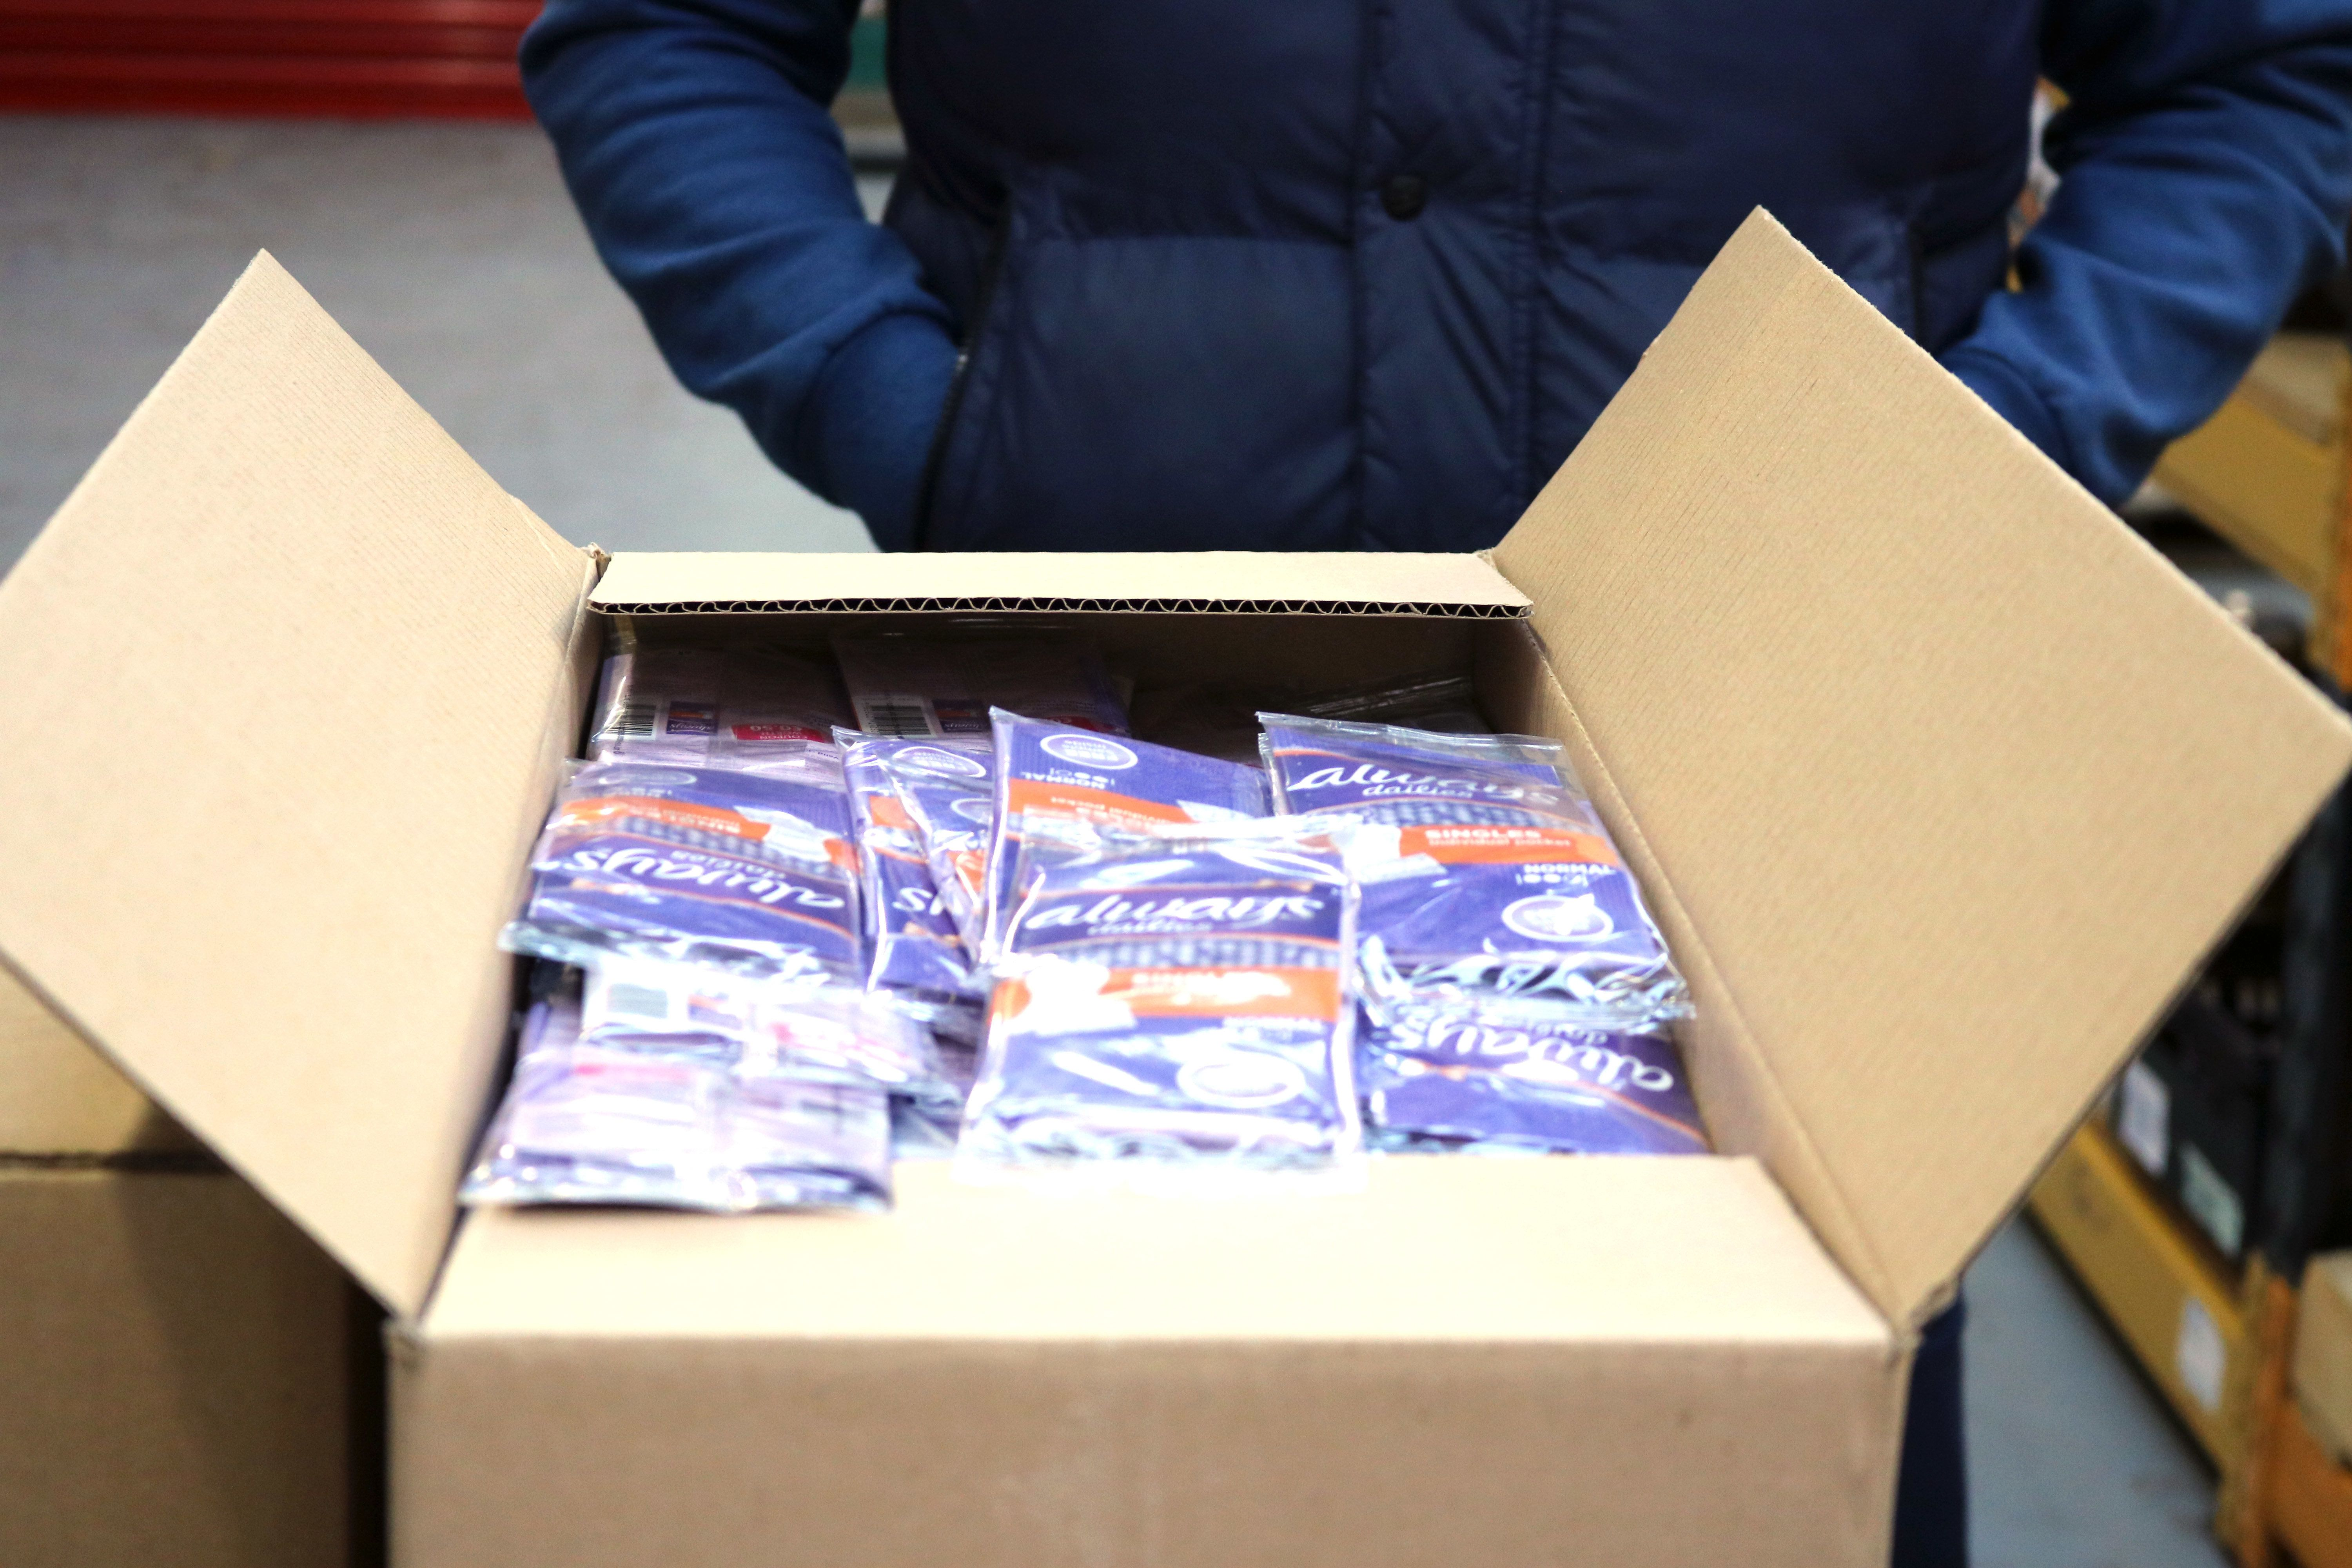 <strong>The Well food bank in Wolverhampton regularly distributes sanitary products to those requesting food parcels</strong>